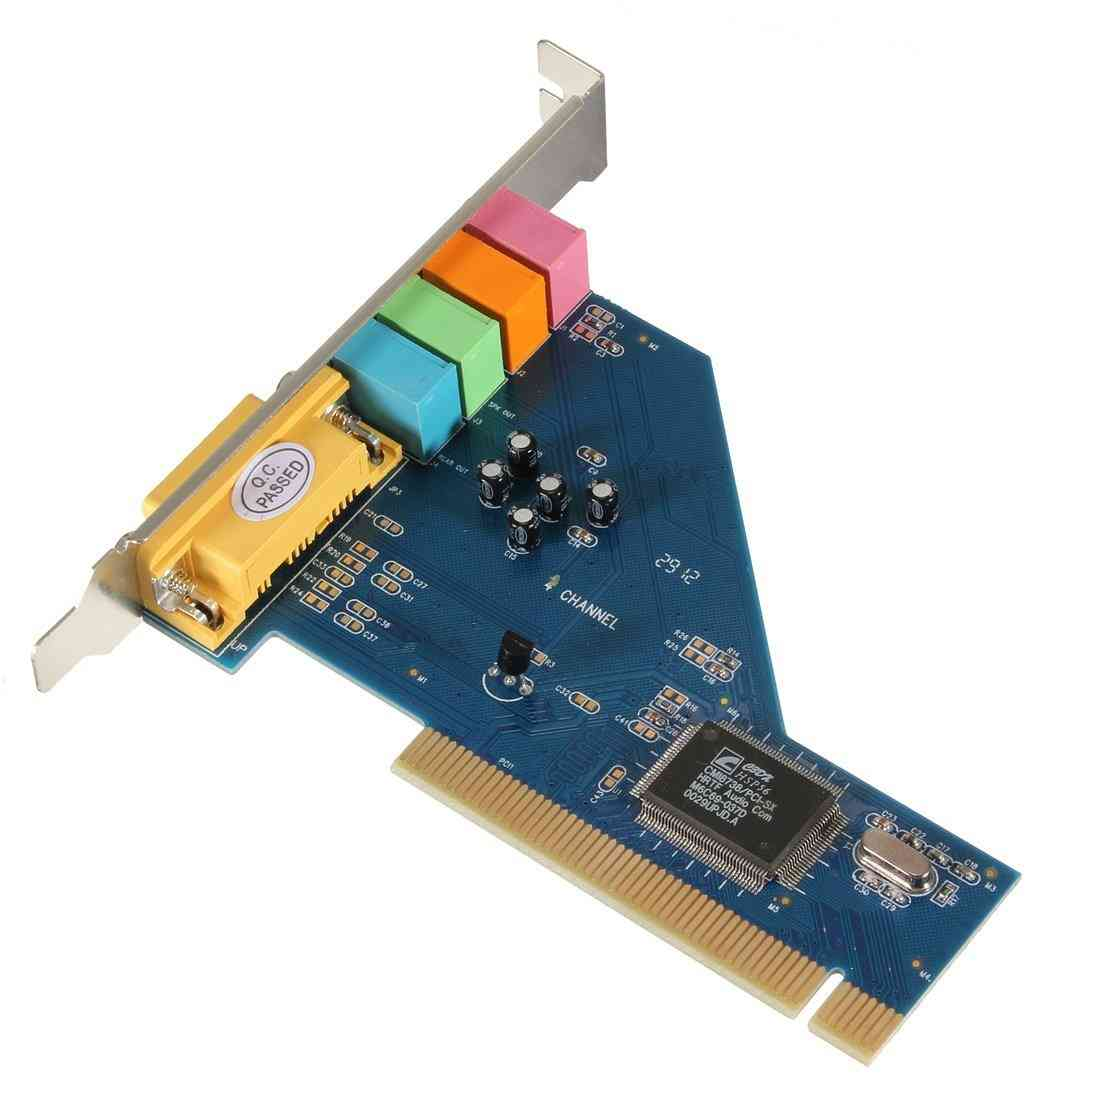 4 Channel, 3d Audio Stereo - Pci Sound Card